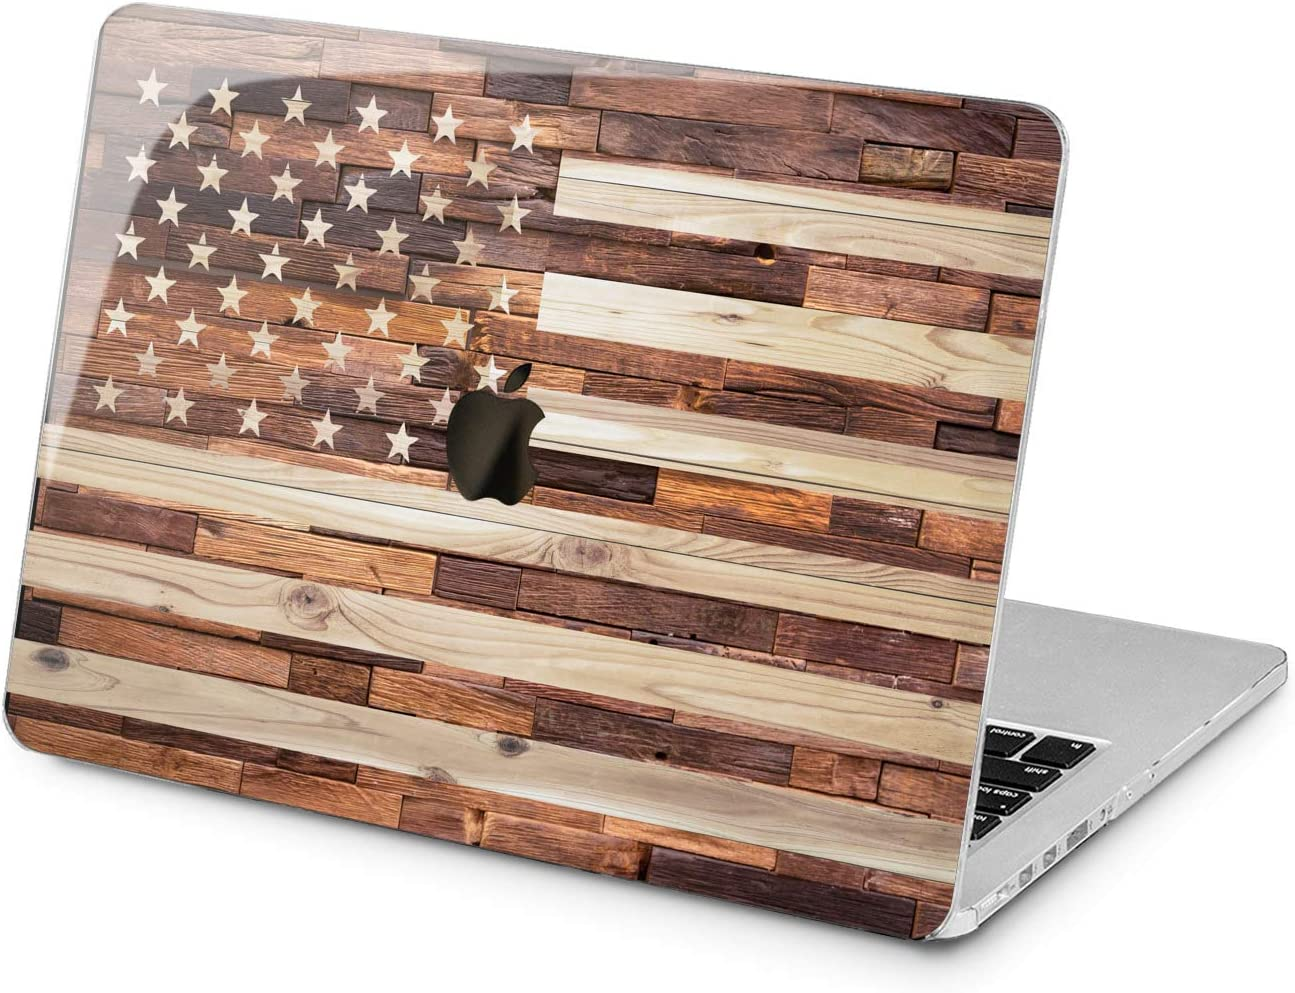 "Cavka Hard Shell Case for Apple MacBook Pro 13"" 2019 15"" 2018 Air 13"" 2020 Retina 2015 Mac 11"" Mac 12"" Patriotic Stripes Print Cover Design Stars Wooden USA Plastic Protective Laptop American Flag"